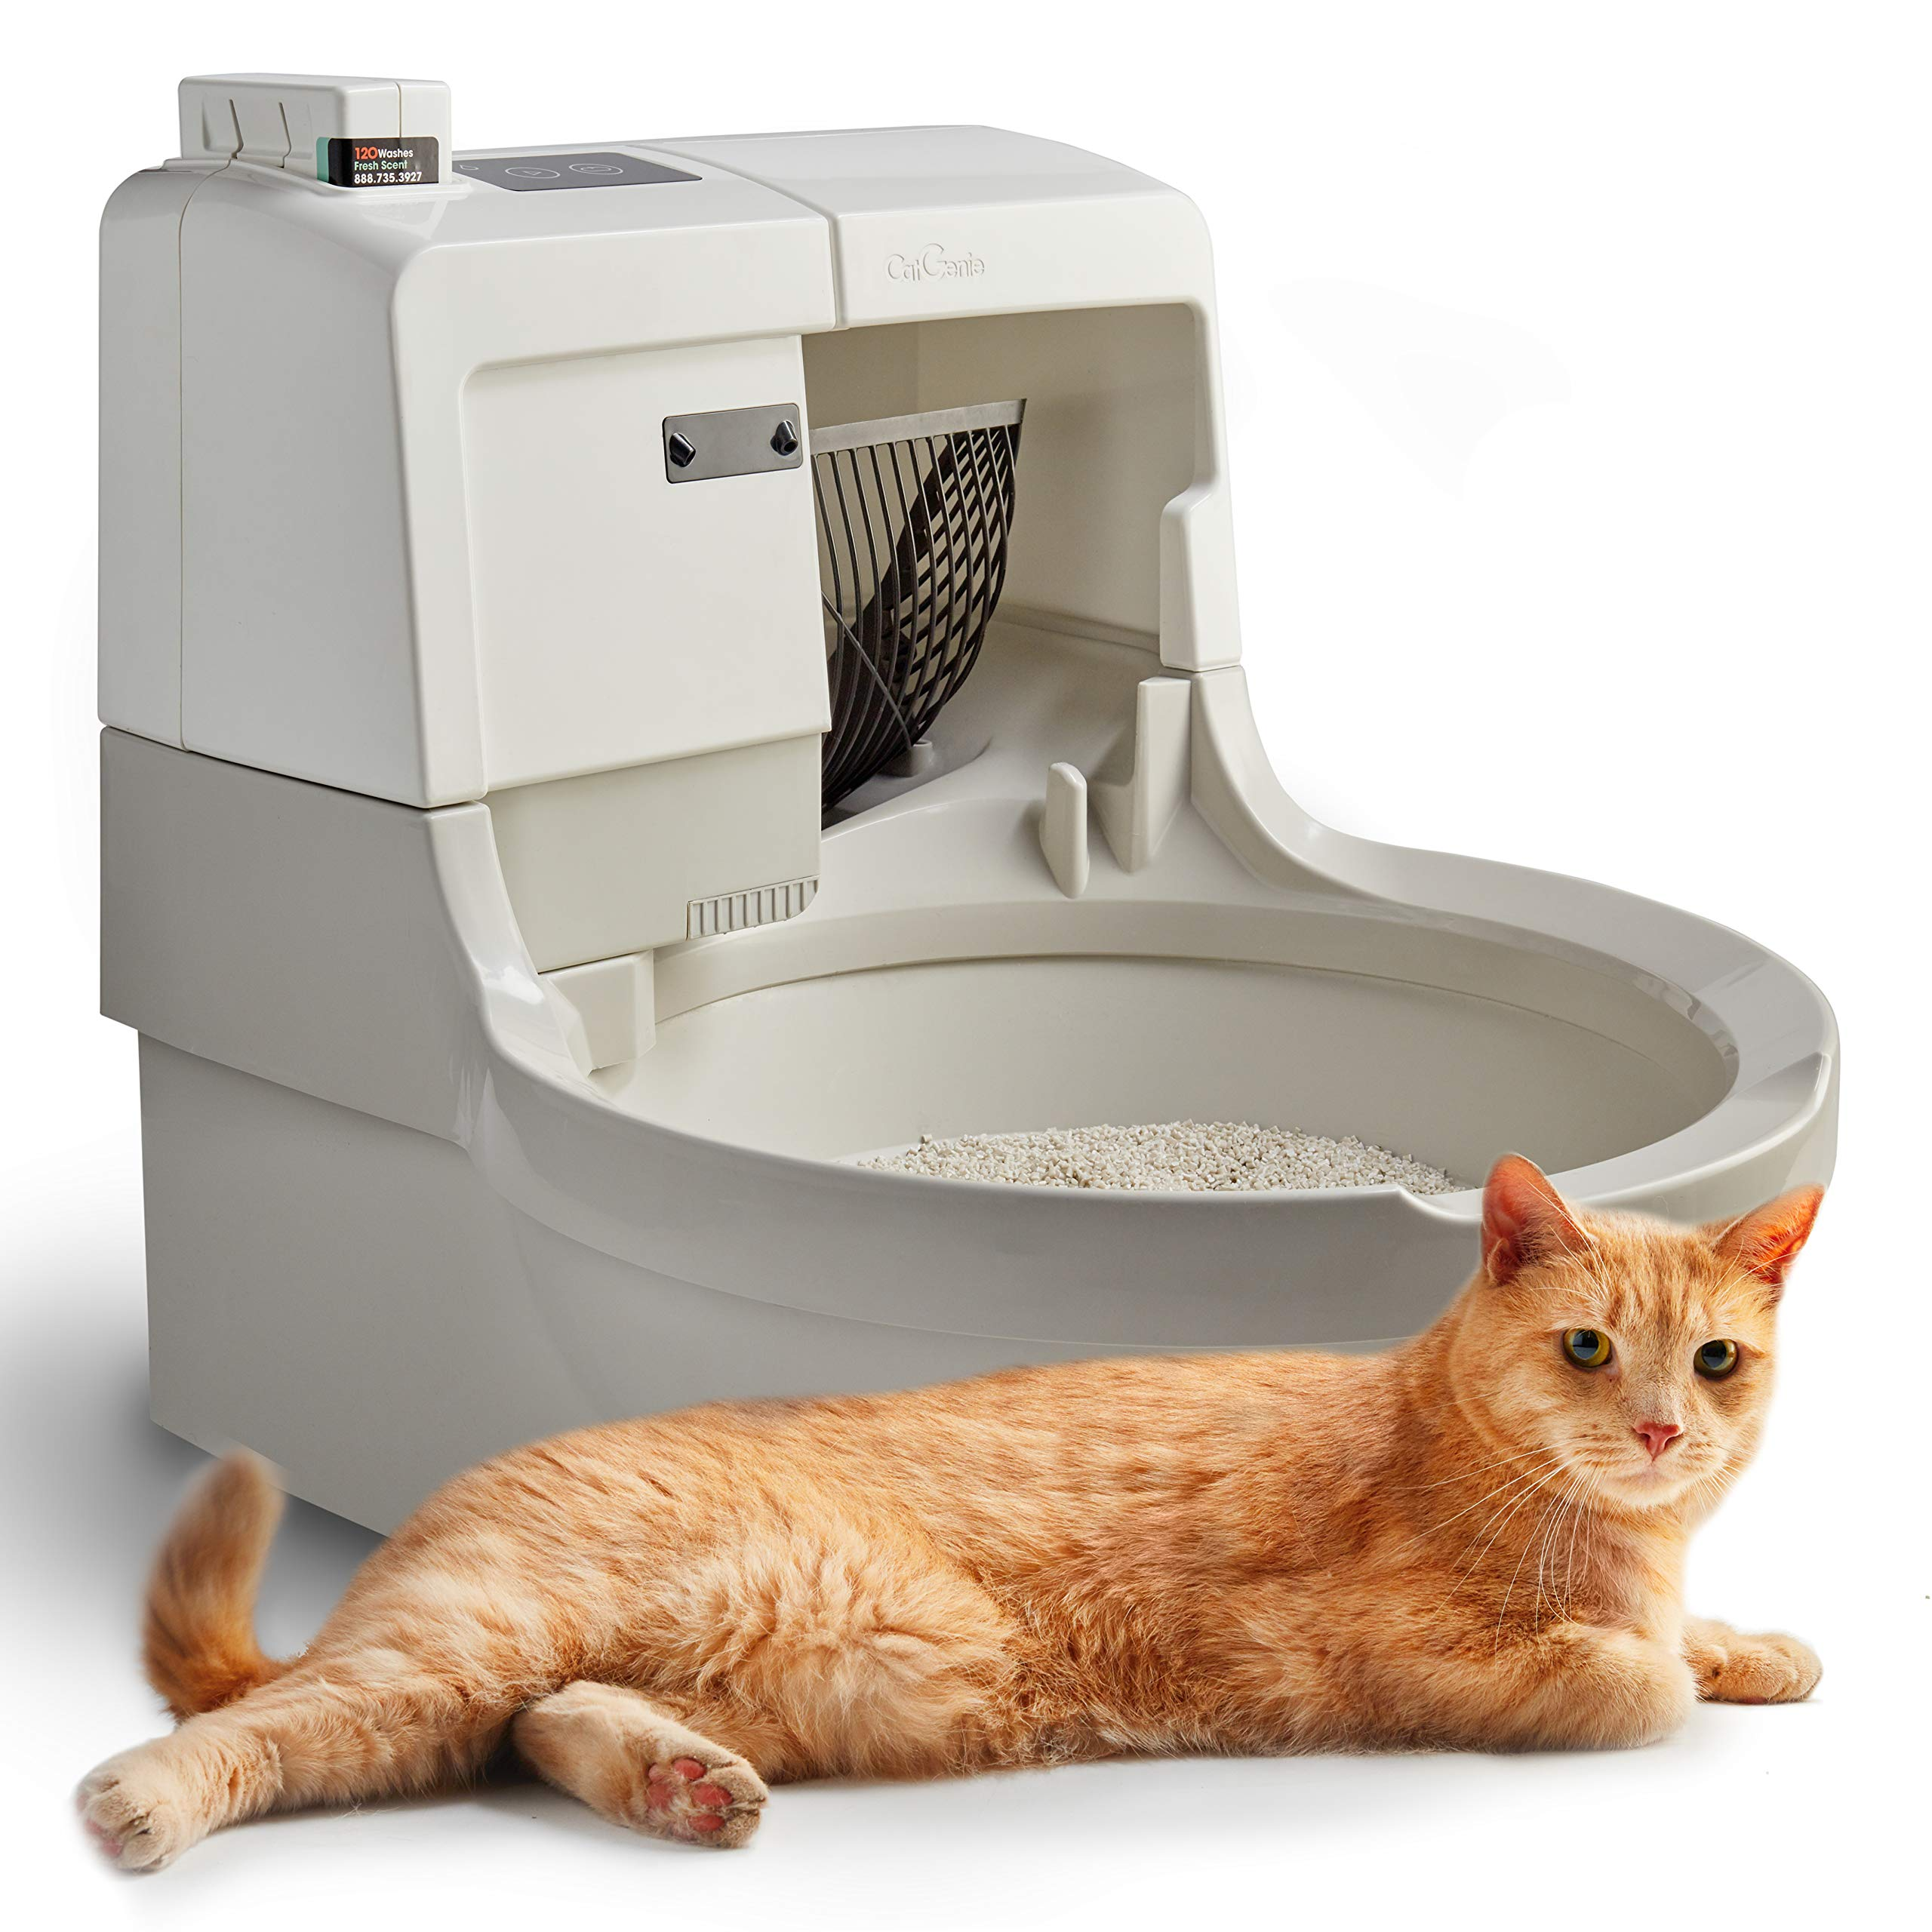 CatGenie A.I. Self-Washing Cat Box (Latest Model)